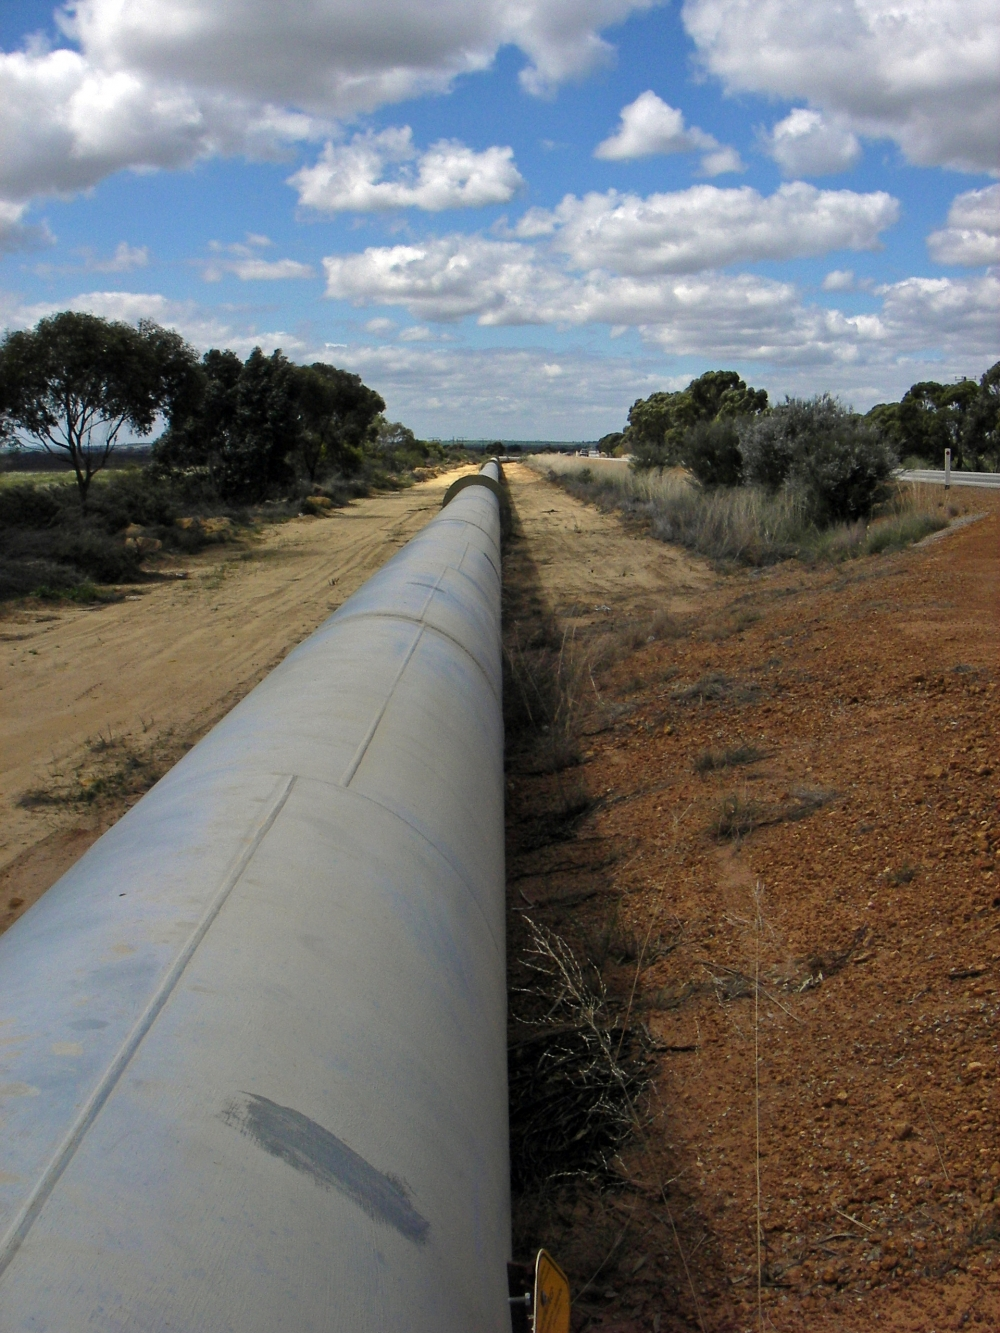 Image Esperanza project 154 km pipeline leakage detection